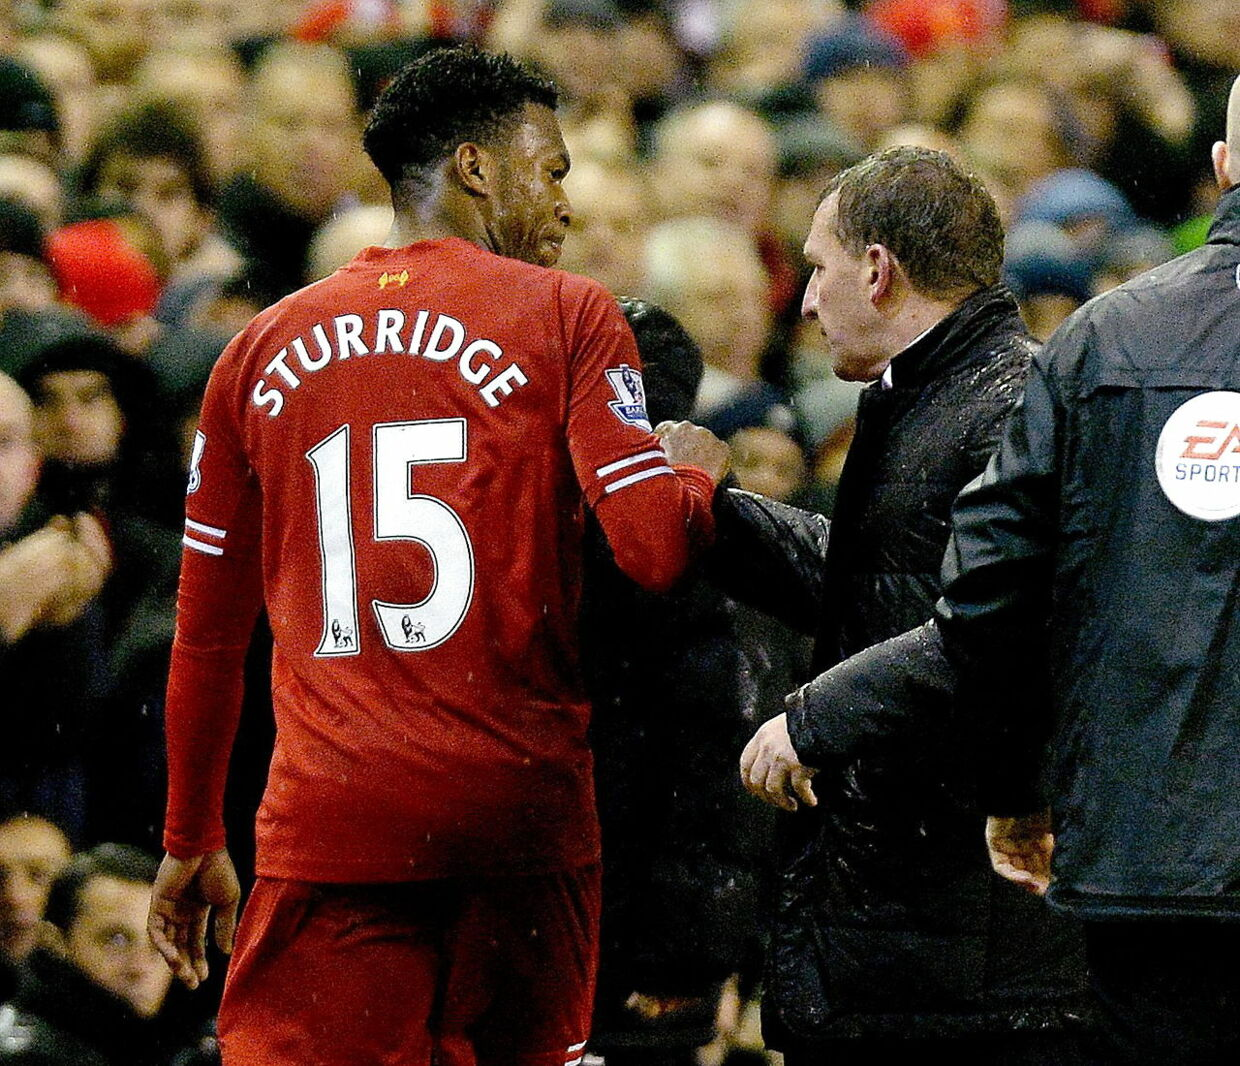 epa04046053 Liverpool's Daniel Sturridge (L ) walks past Liverpool's manager Brendan Rodgers ( R) after being substituted during their English Premier League soccer match at Anfield, Liverpool, Britain, 28 January 2014. EPA/PETER POWELL http://www.epa.eu/files/Terms%20and%20Conditions/DataCo_Terms_and_Conditions.pdf